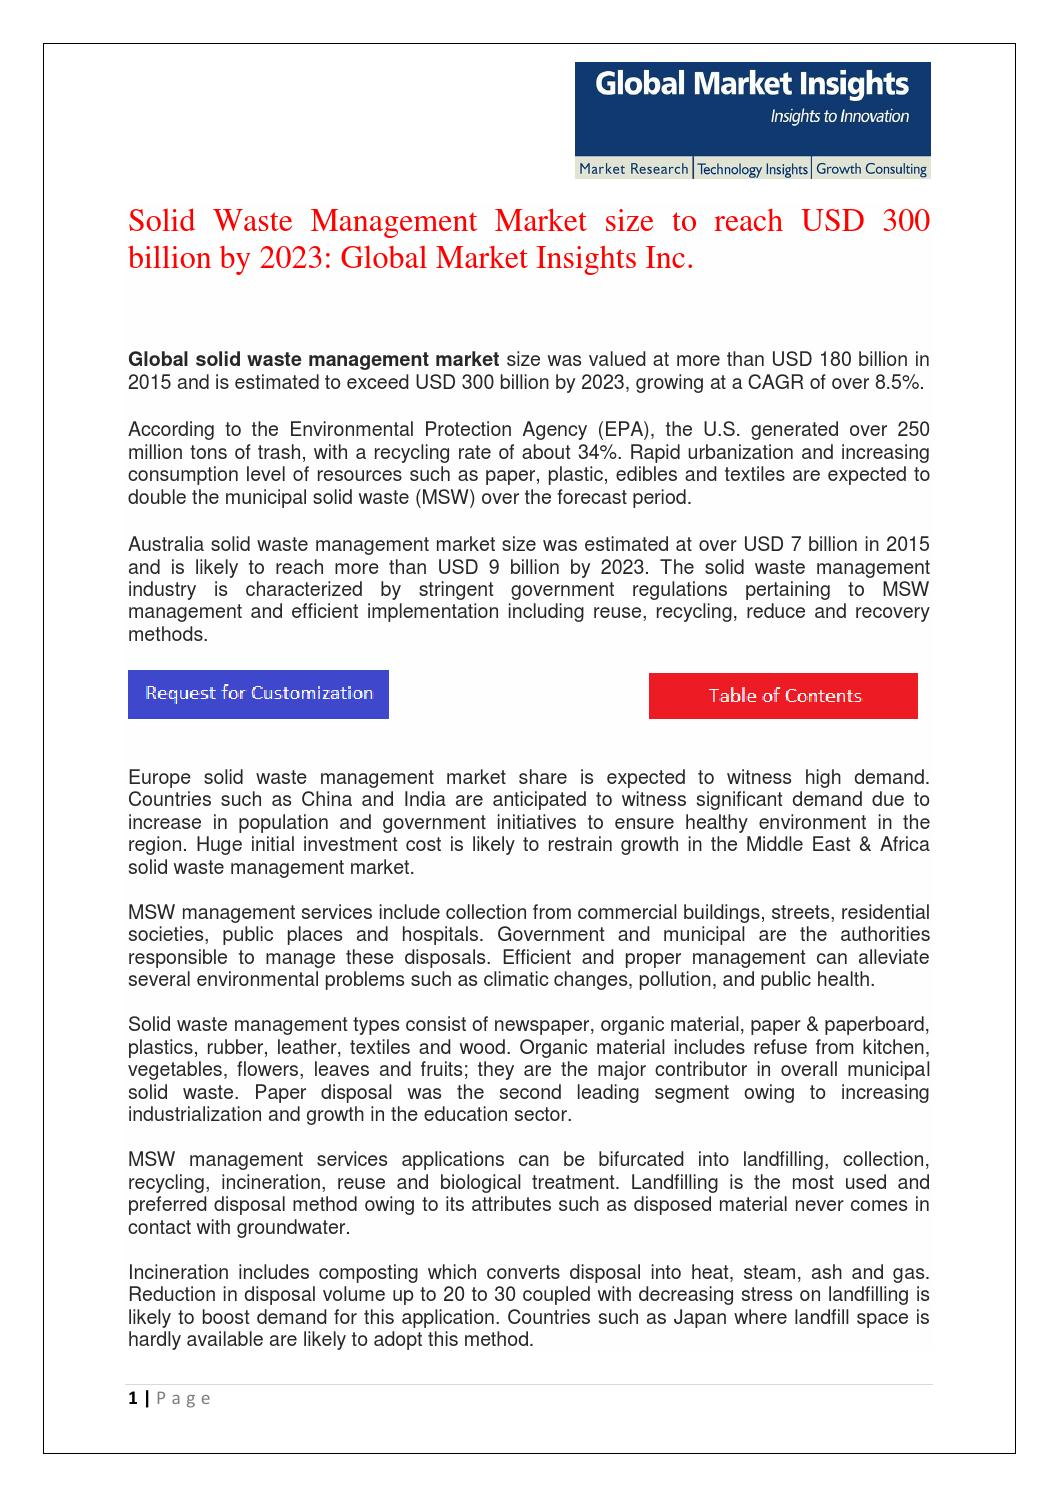 Solid Waste Management Market size worth USD 300 billion by 2023 by